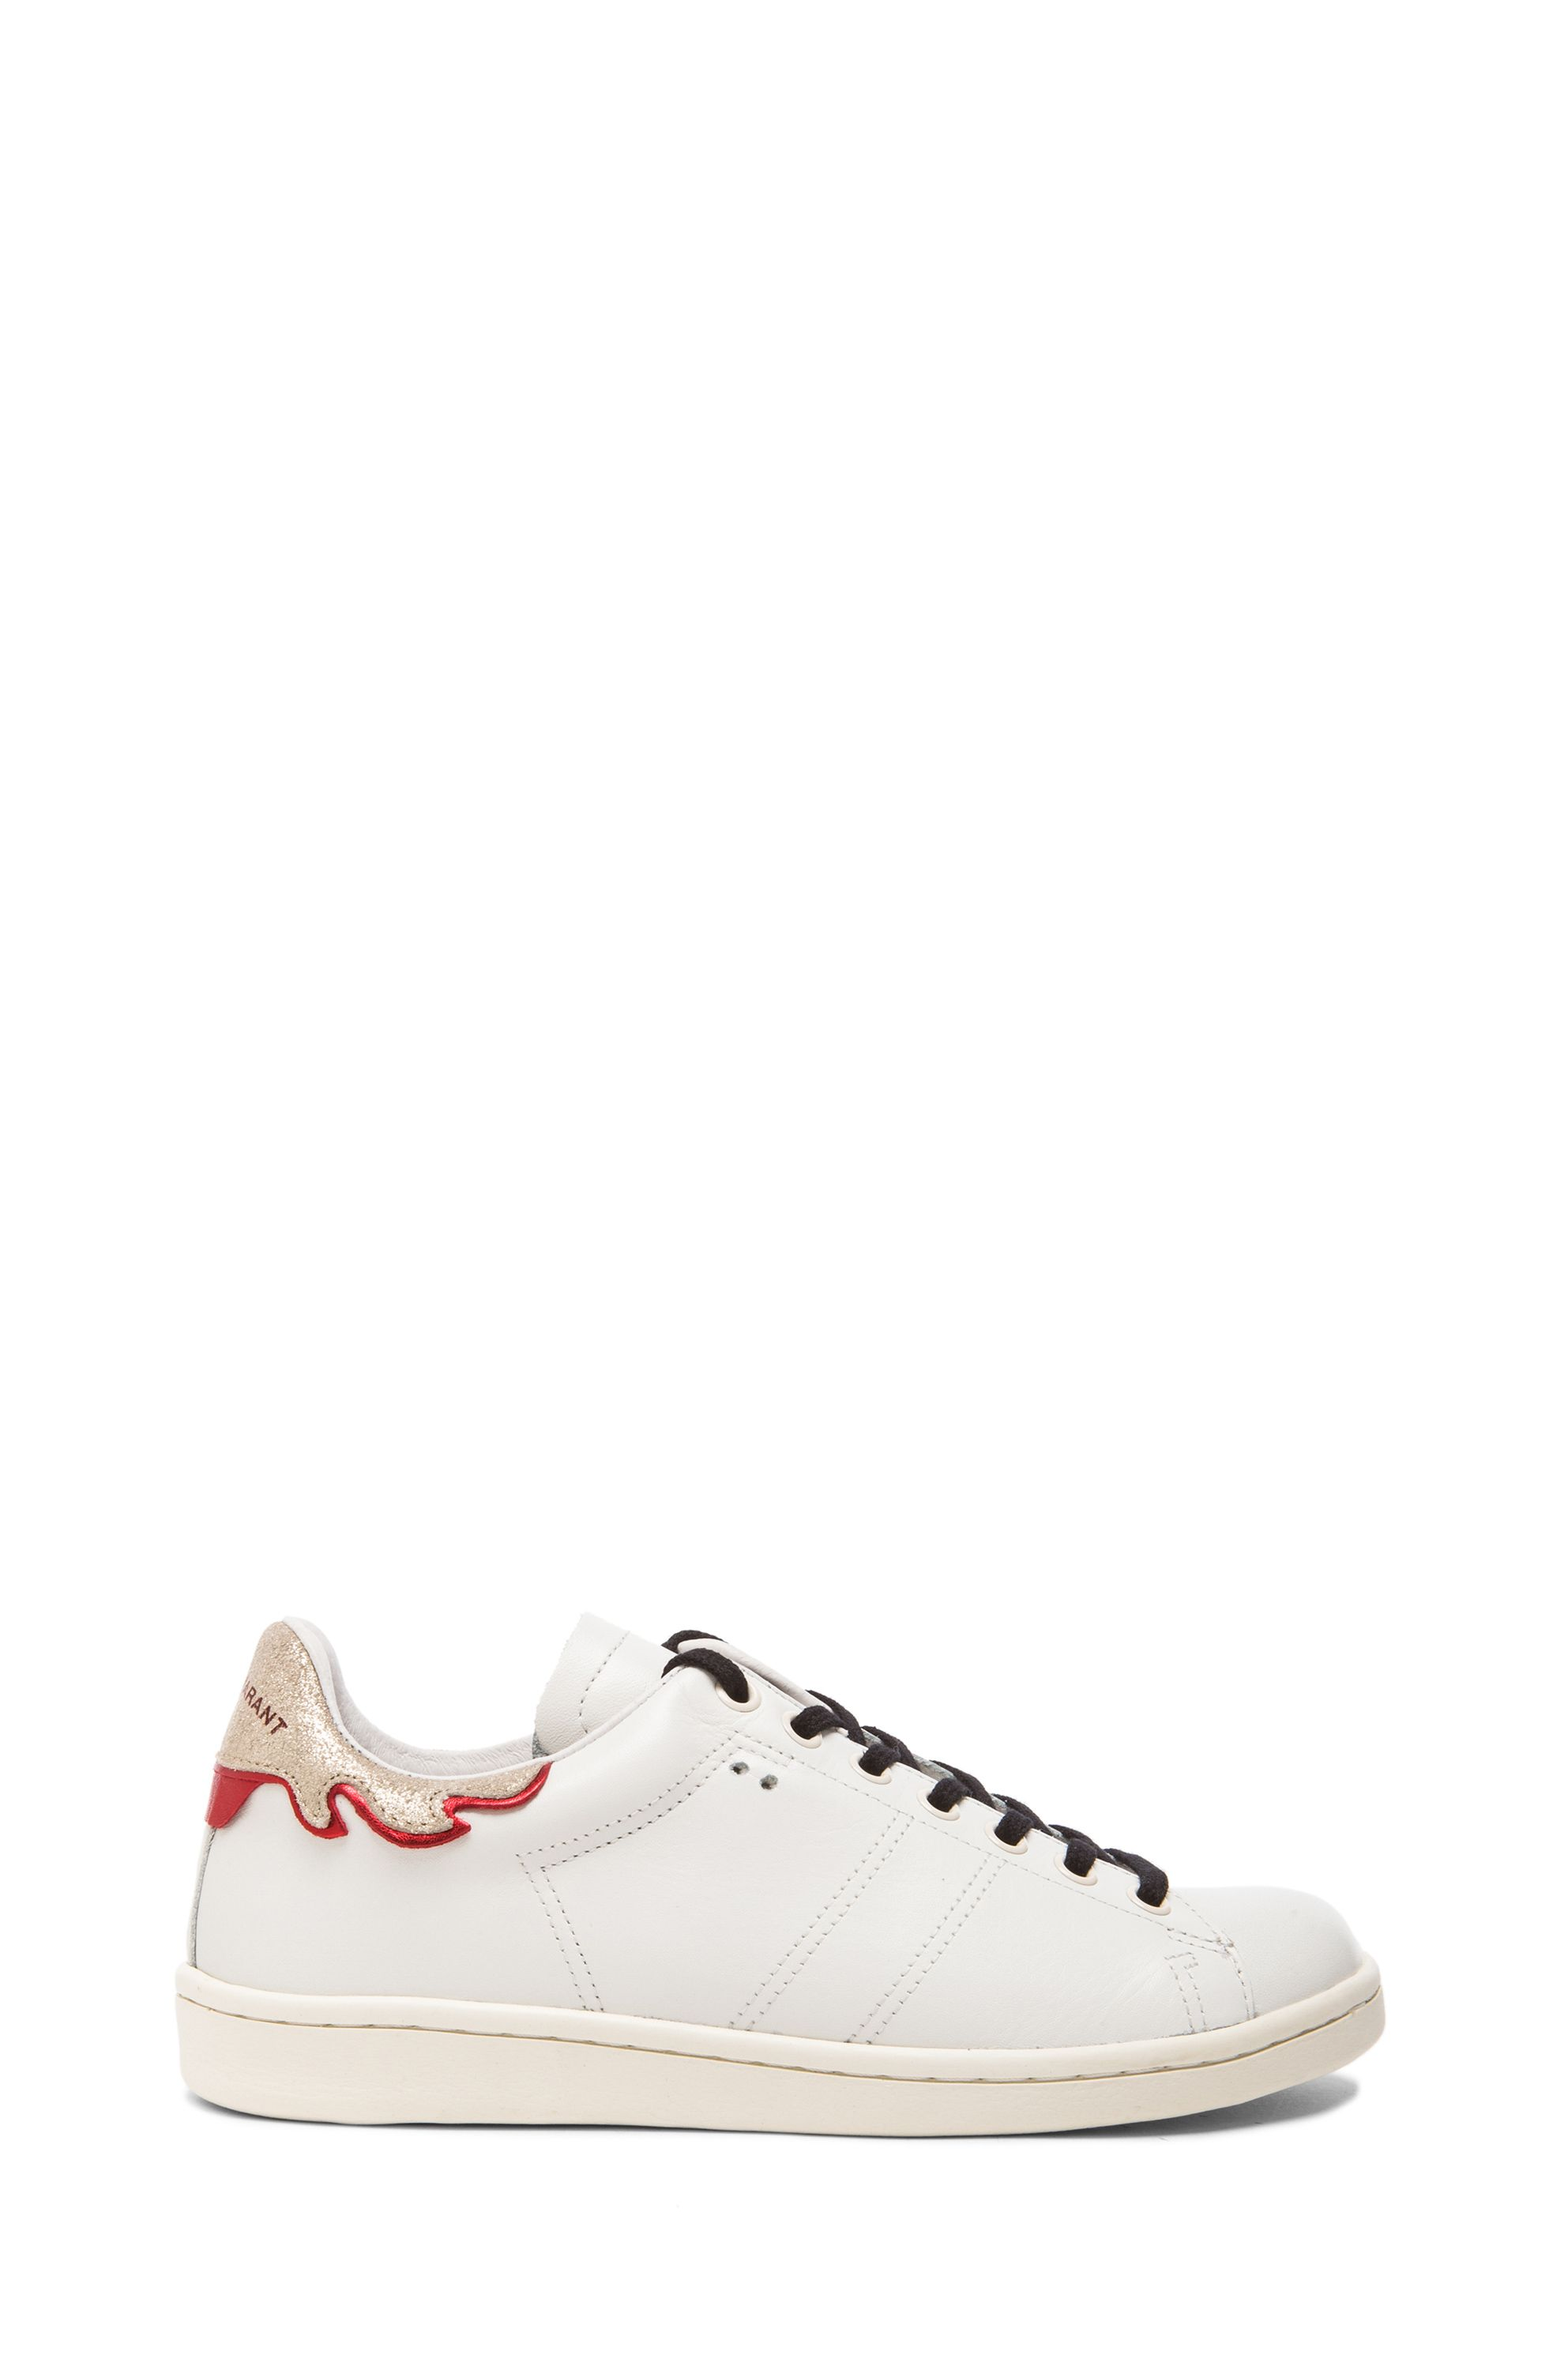 6daded5736 Isabel Marant Bart Leather Sneakers in Silver & White | THE PERFECT ...